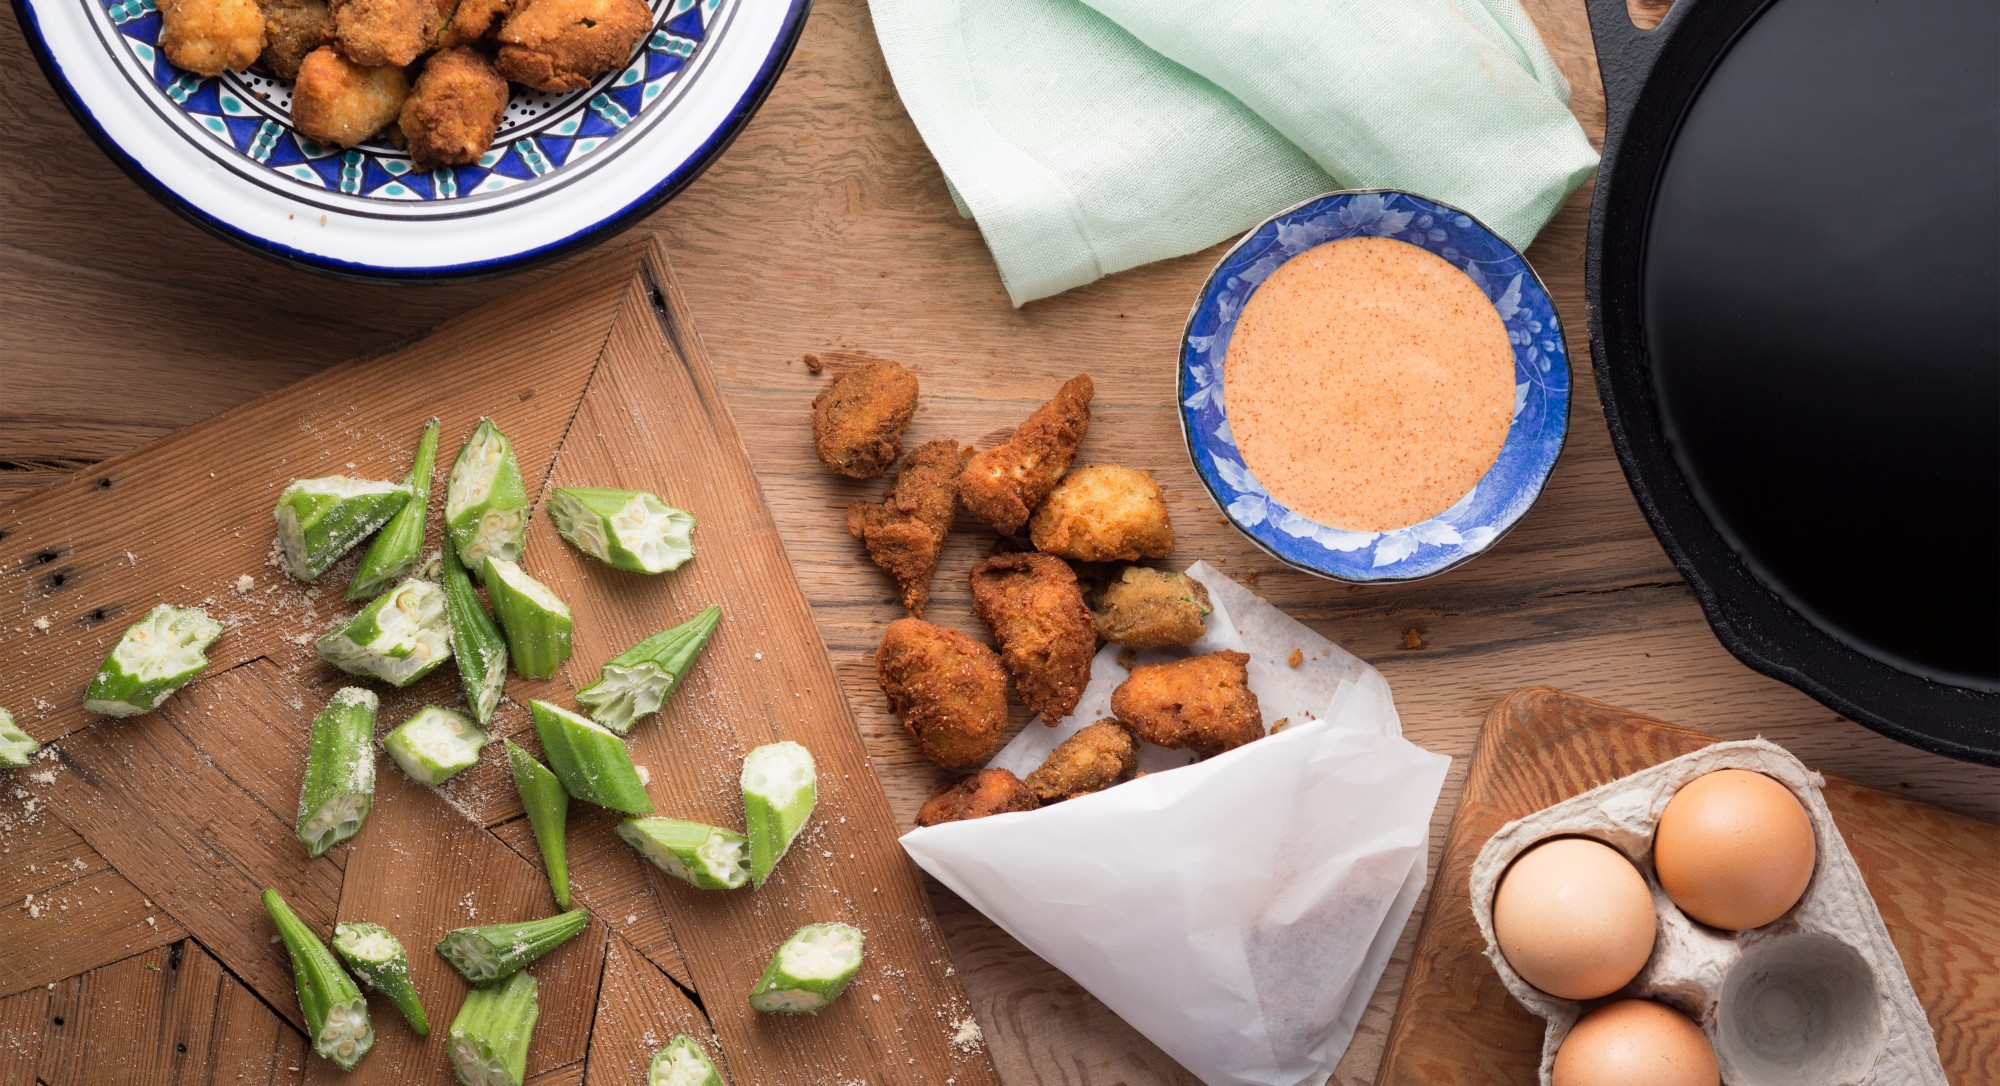 This Gluten-Free Take on Fried Okra Will Rock Your World